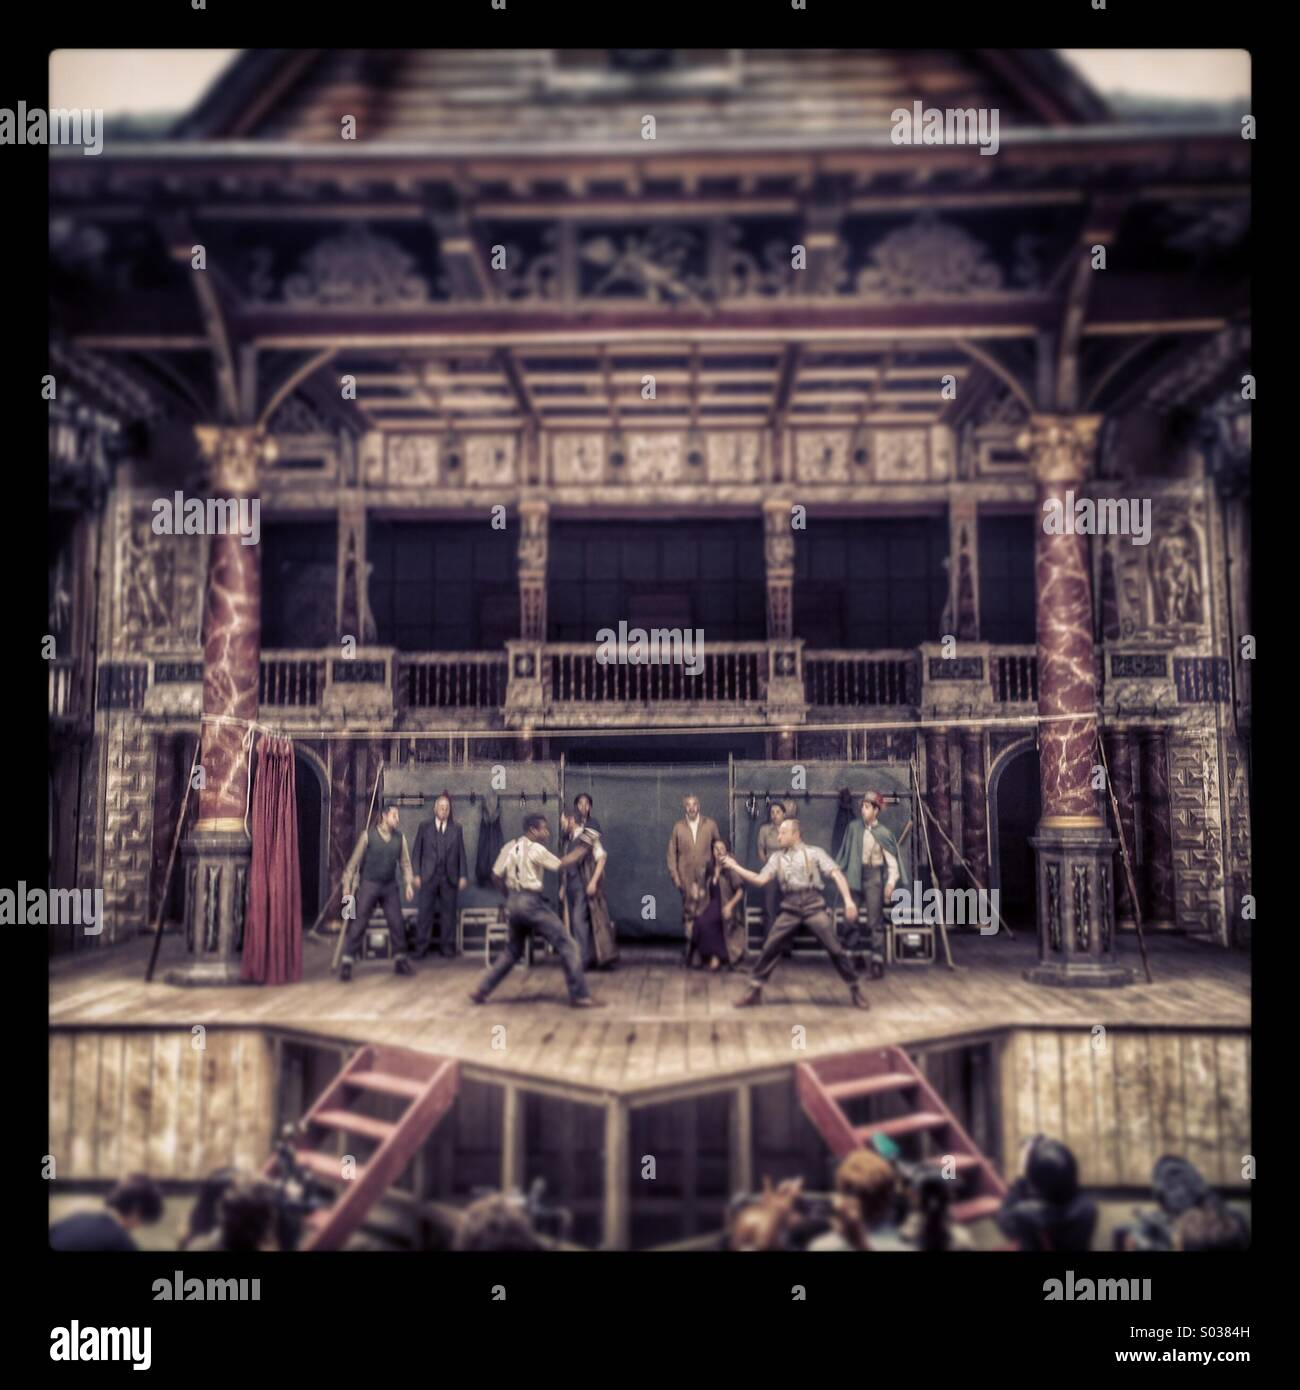 People perform a play on stage at the globe theatre in London - Stock Image